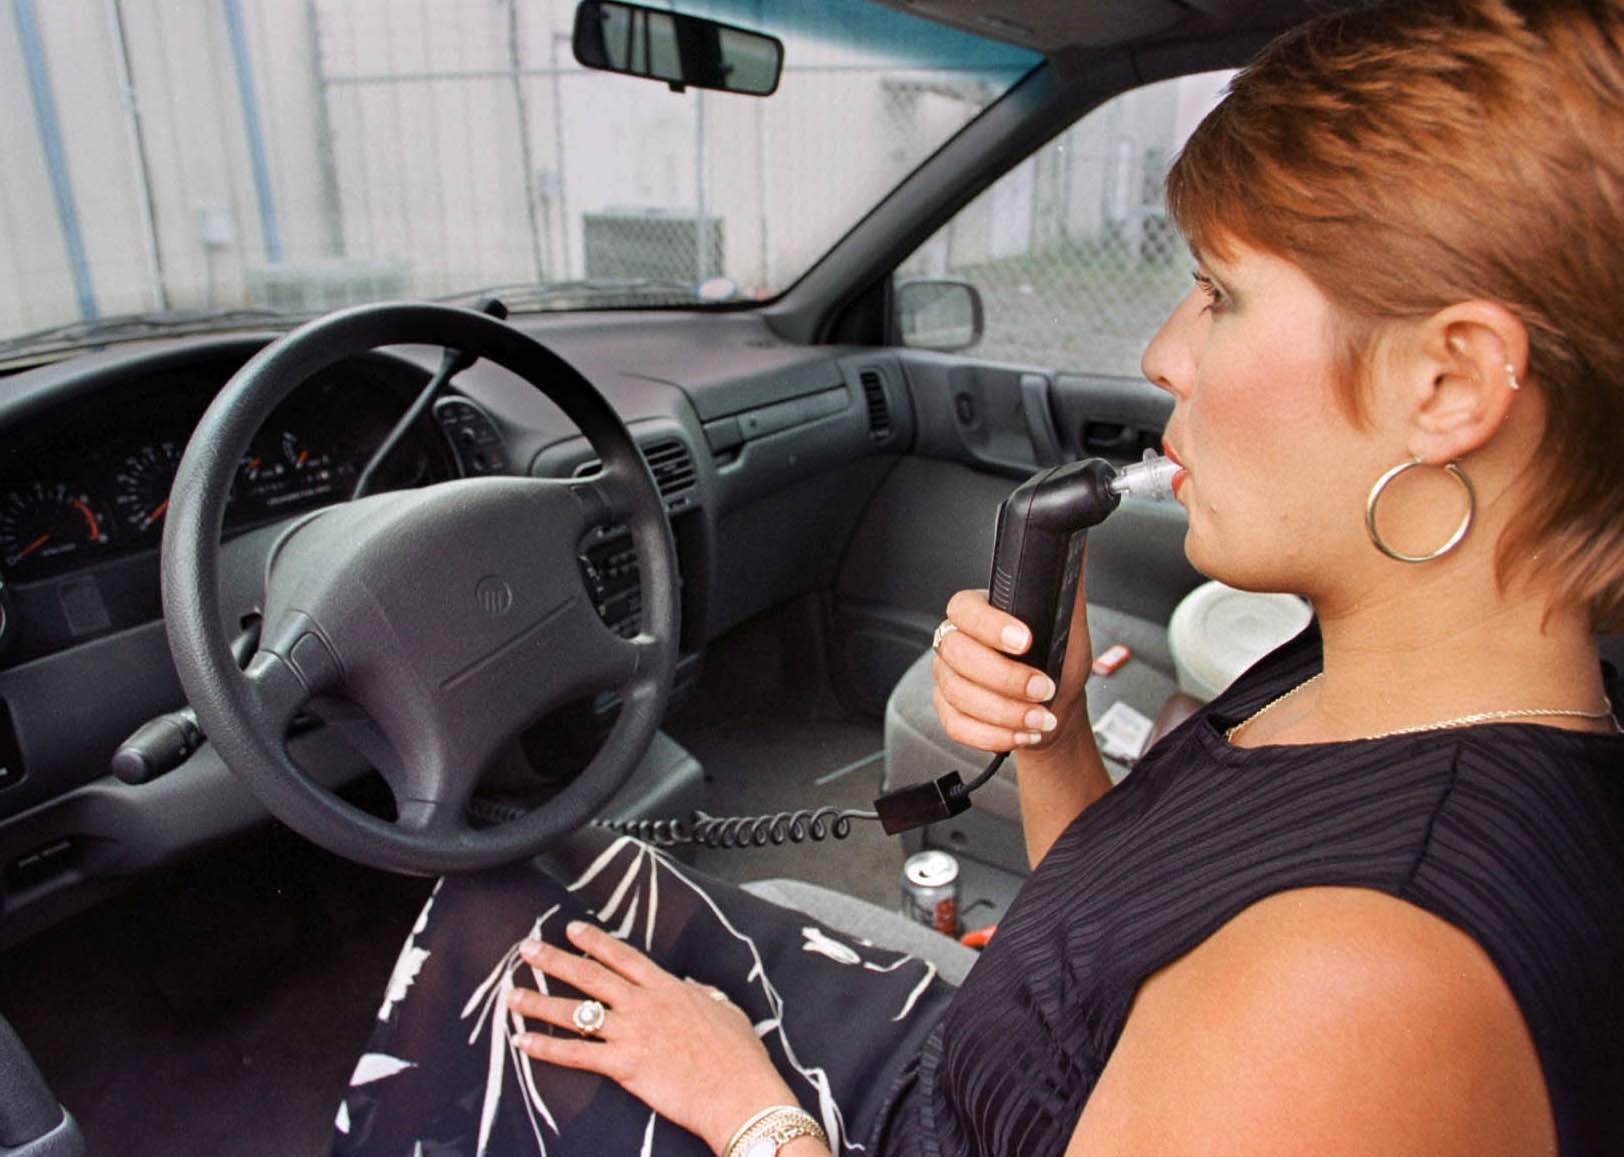 Salt Lake City Ignition Interlock Lawyer